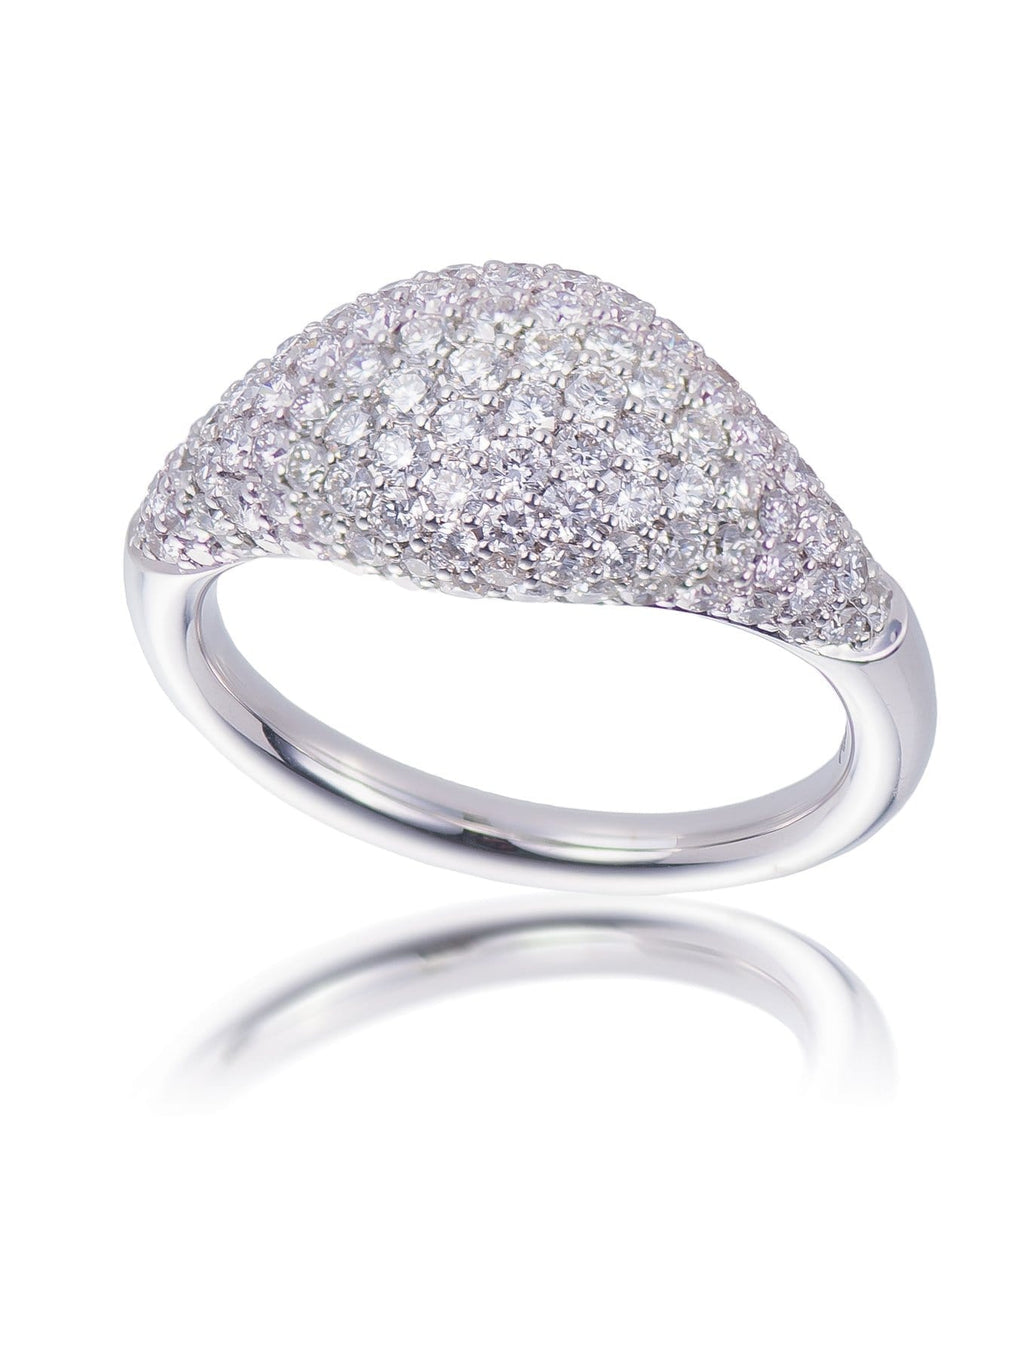 Domed Pave Cocktail Ring